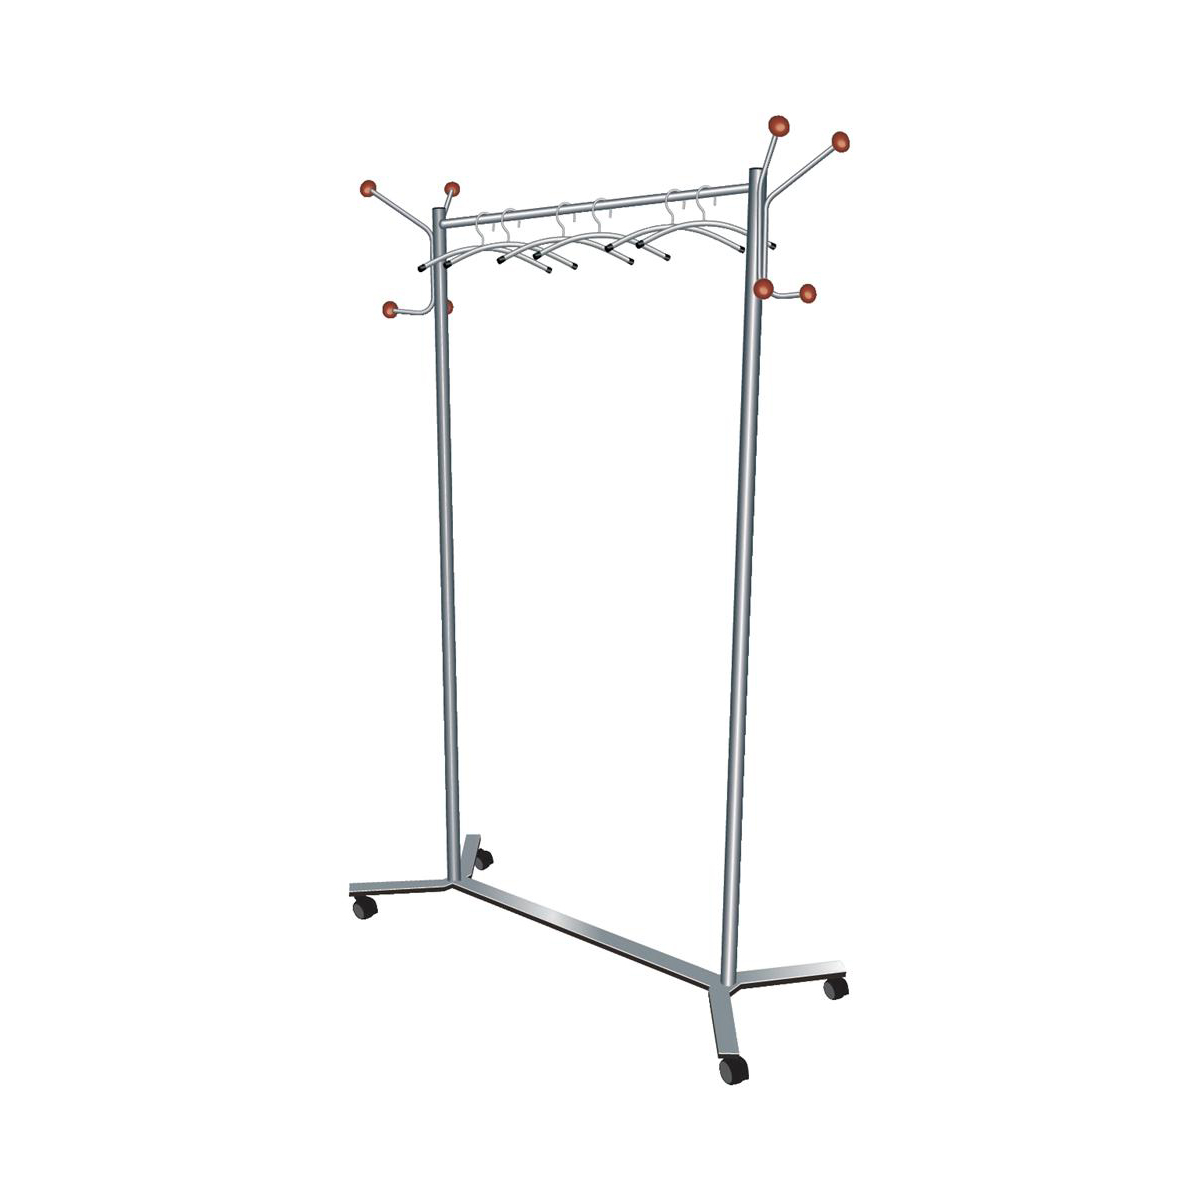 Image for 5 Star Facilities Coat Rack Mobile 4 Wheels 4 Pegs 4 Hooks Capacity of 36 Hangers 1175x440x1740mm Silver